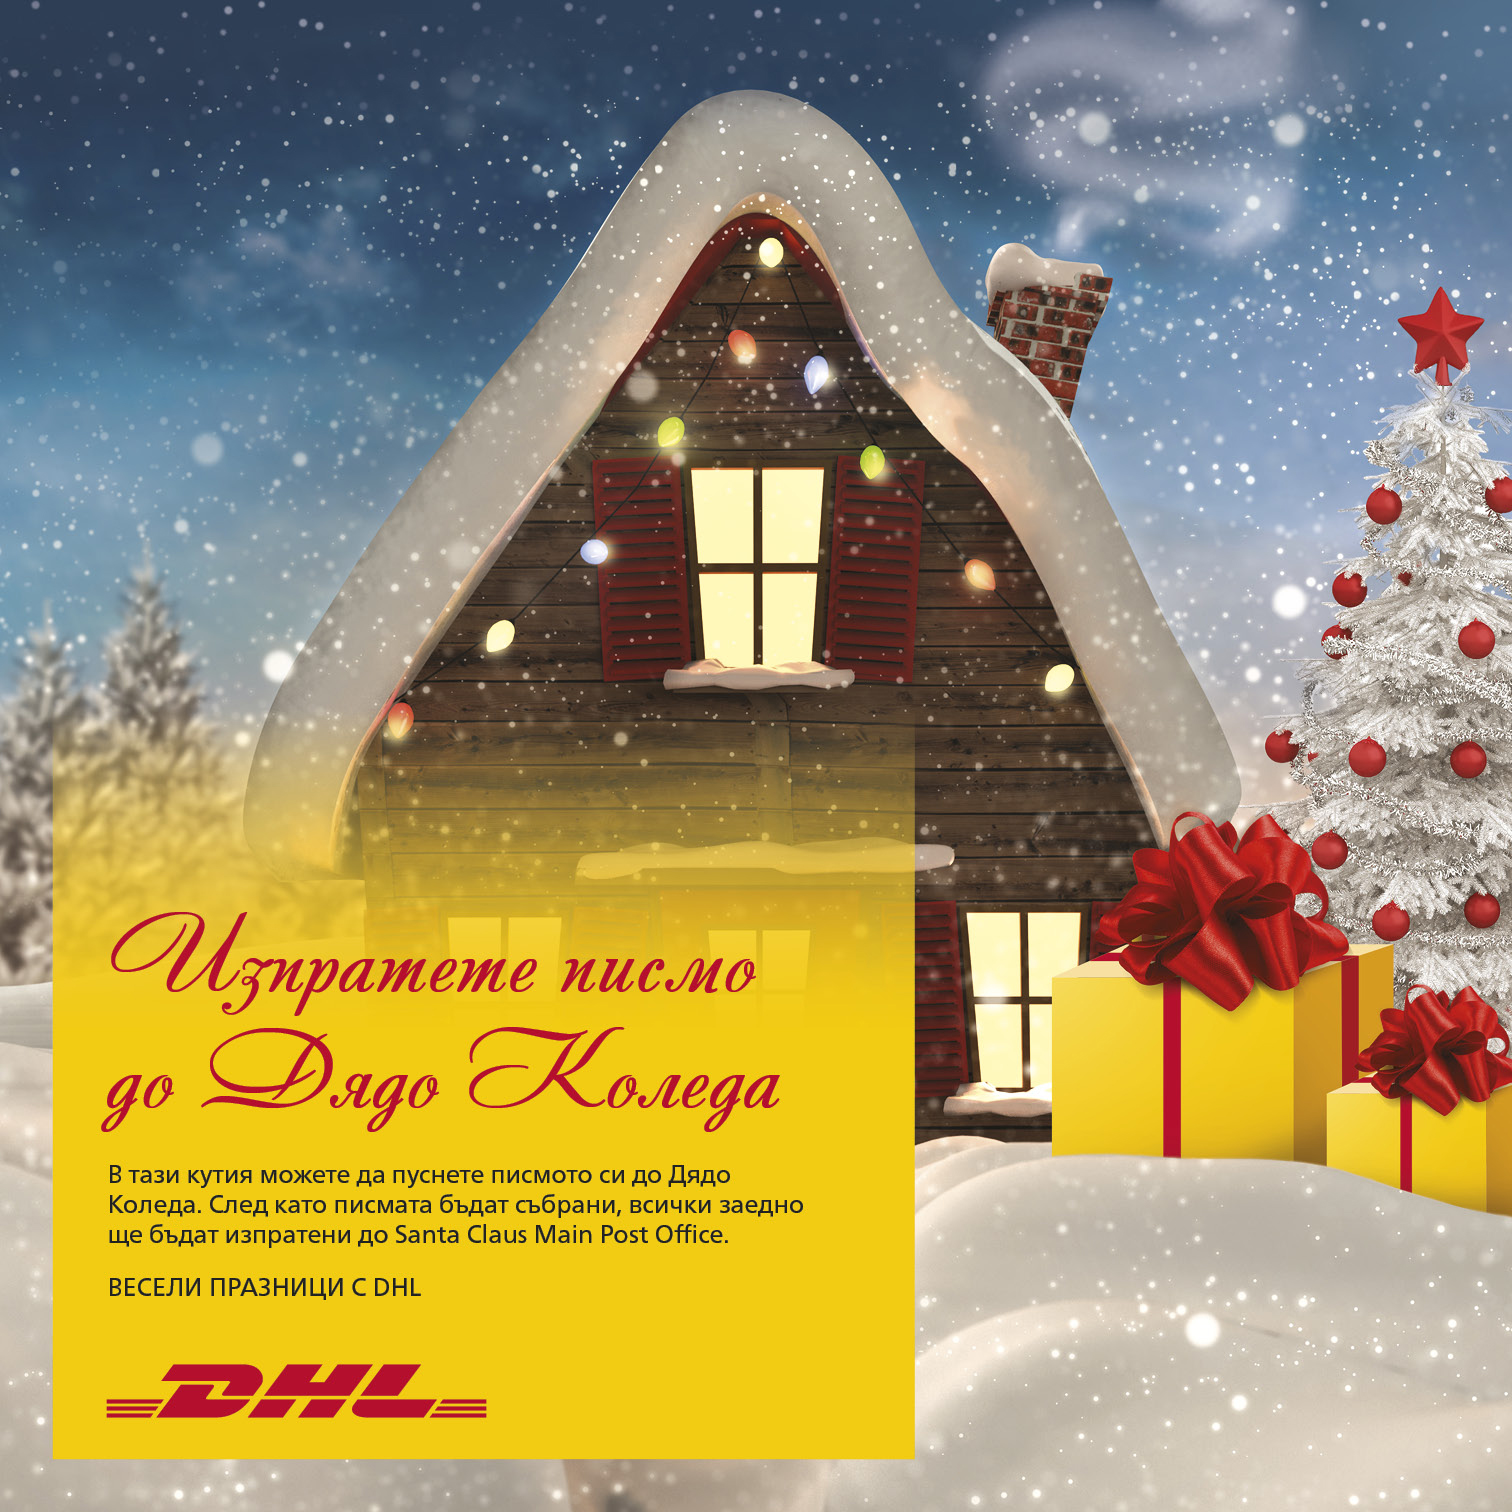 DHL Weihnachtsaktion